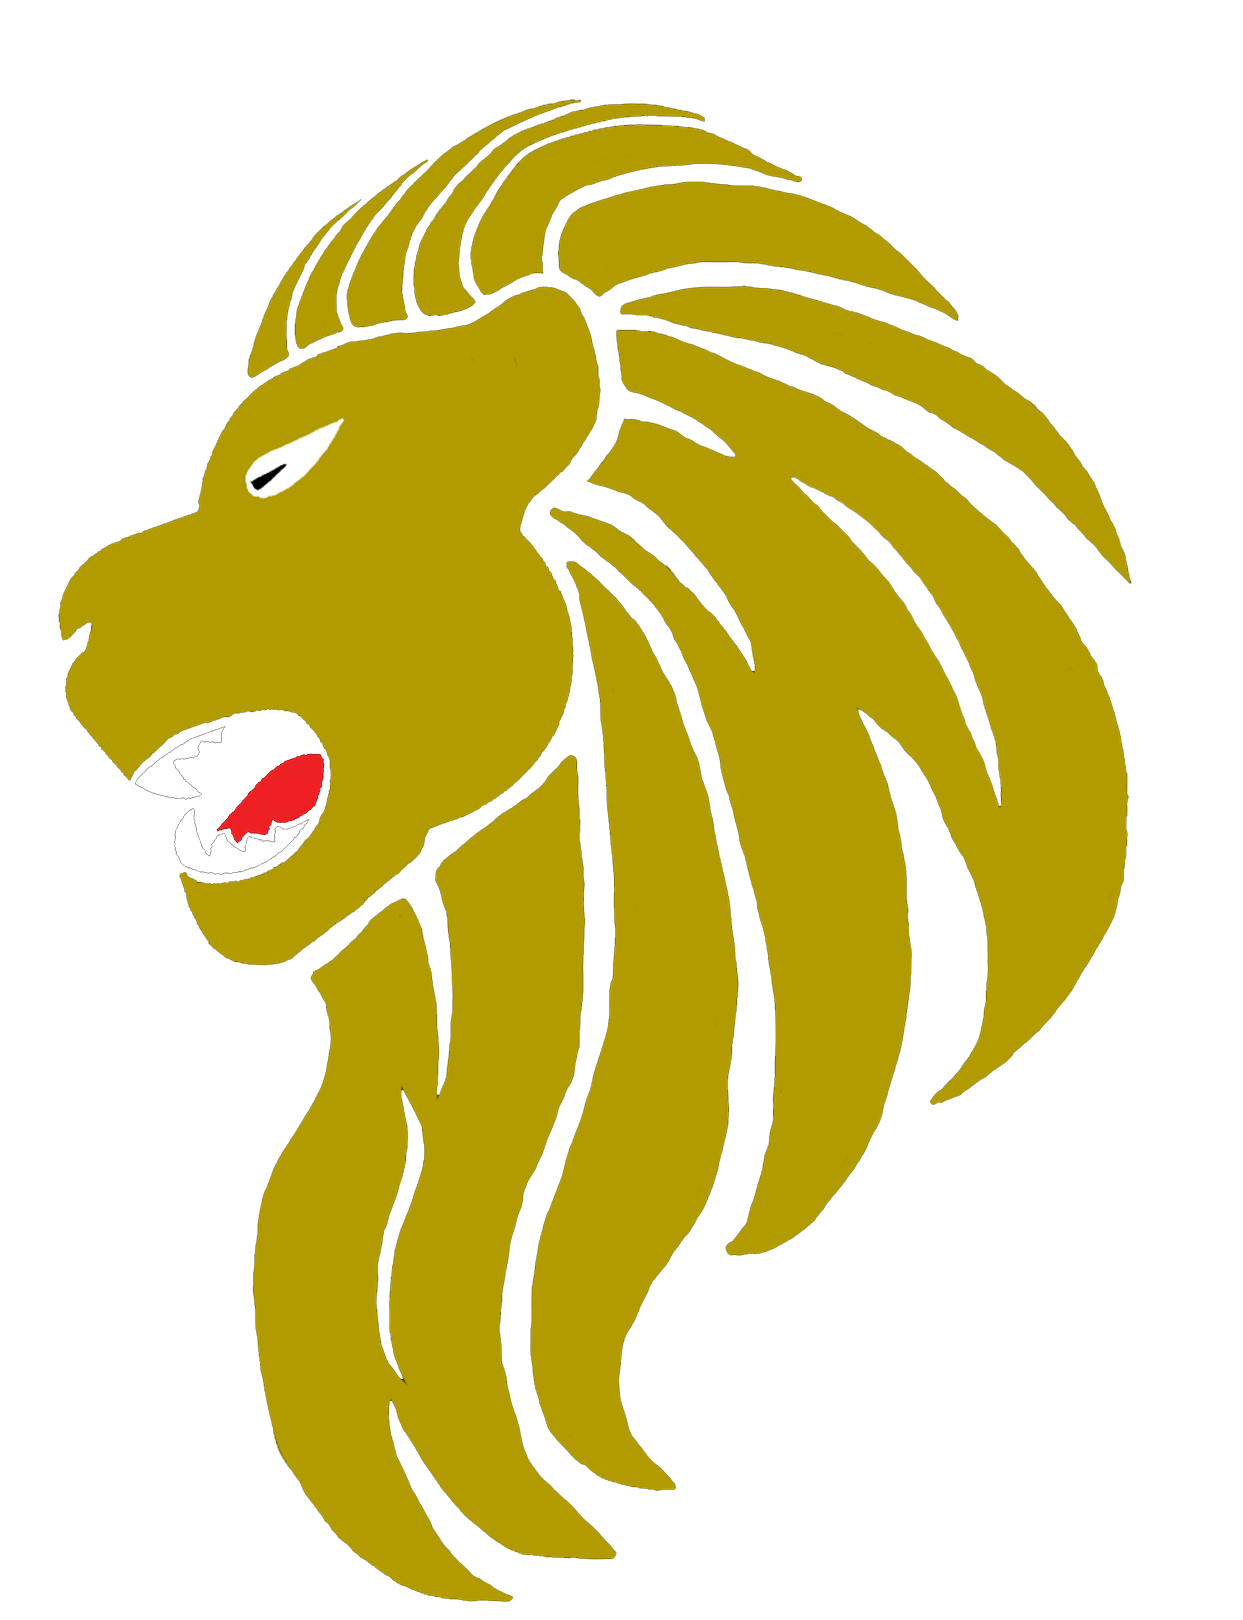 Roaring Lion Logo Png | www.imgkid.com - The Image Kid Has It!